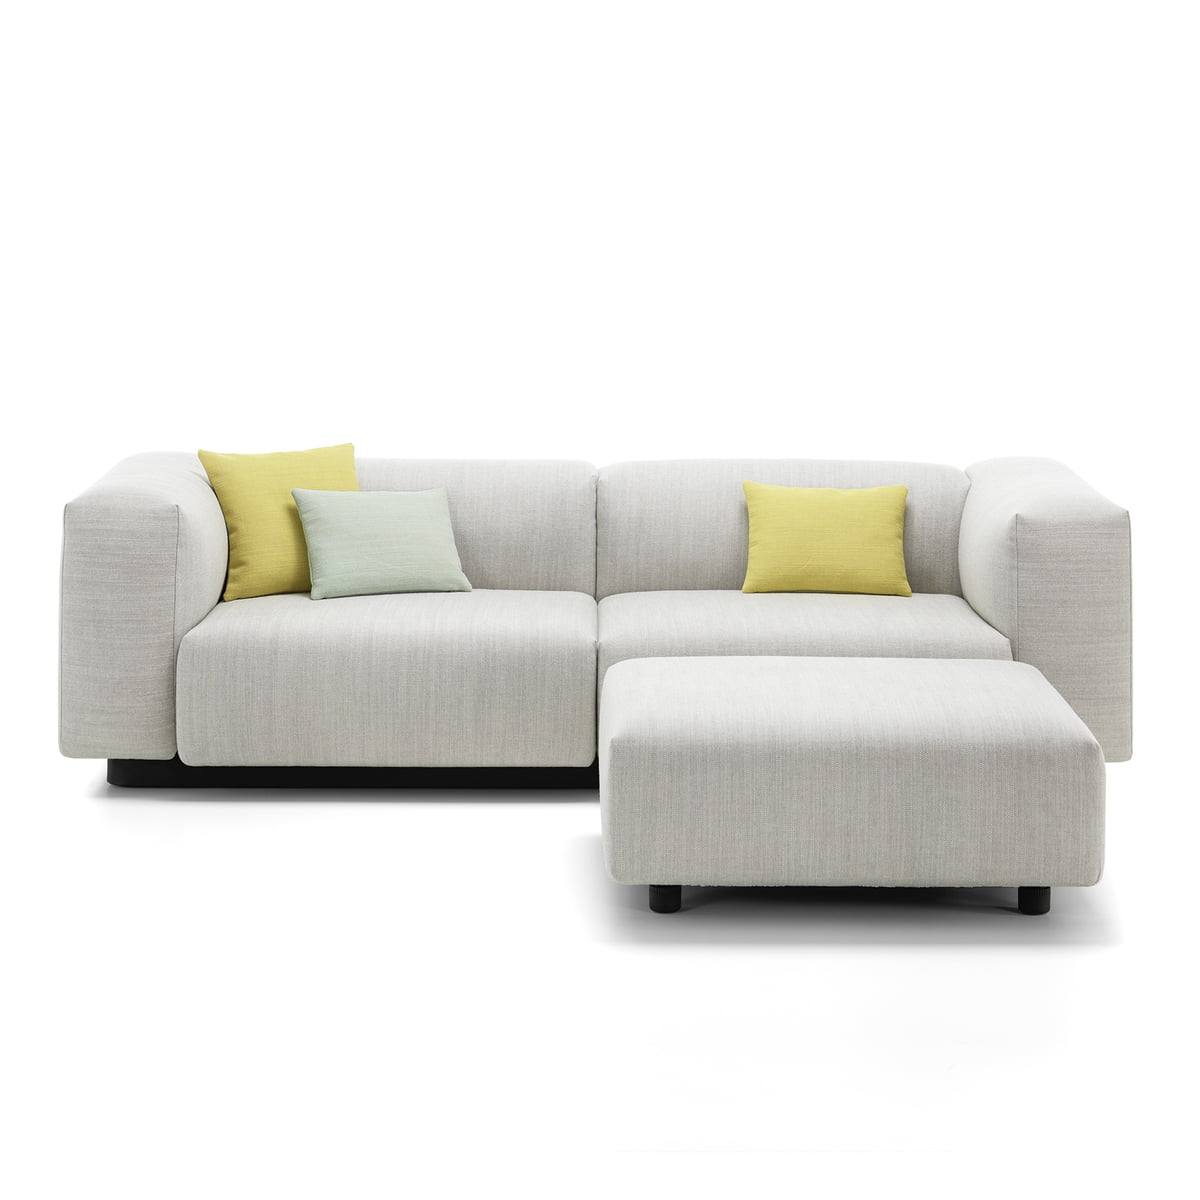 2 seater sofa with chaise furniture sofa sectionals chaise for 2 seater chaise sofa bed